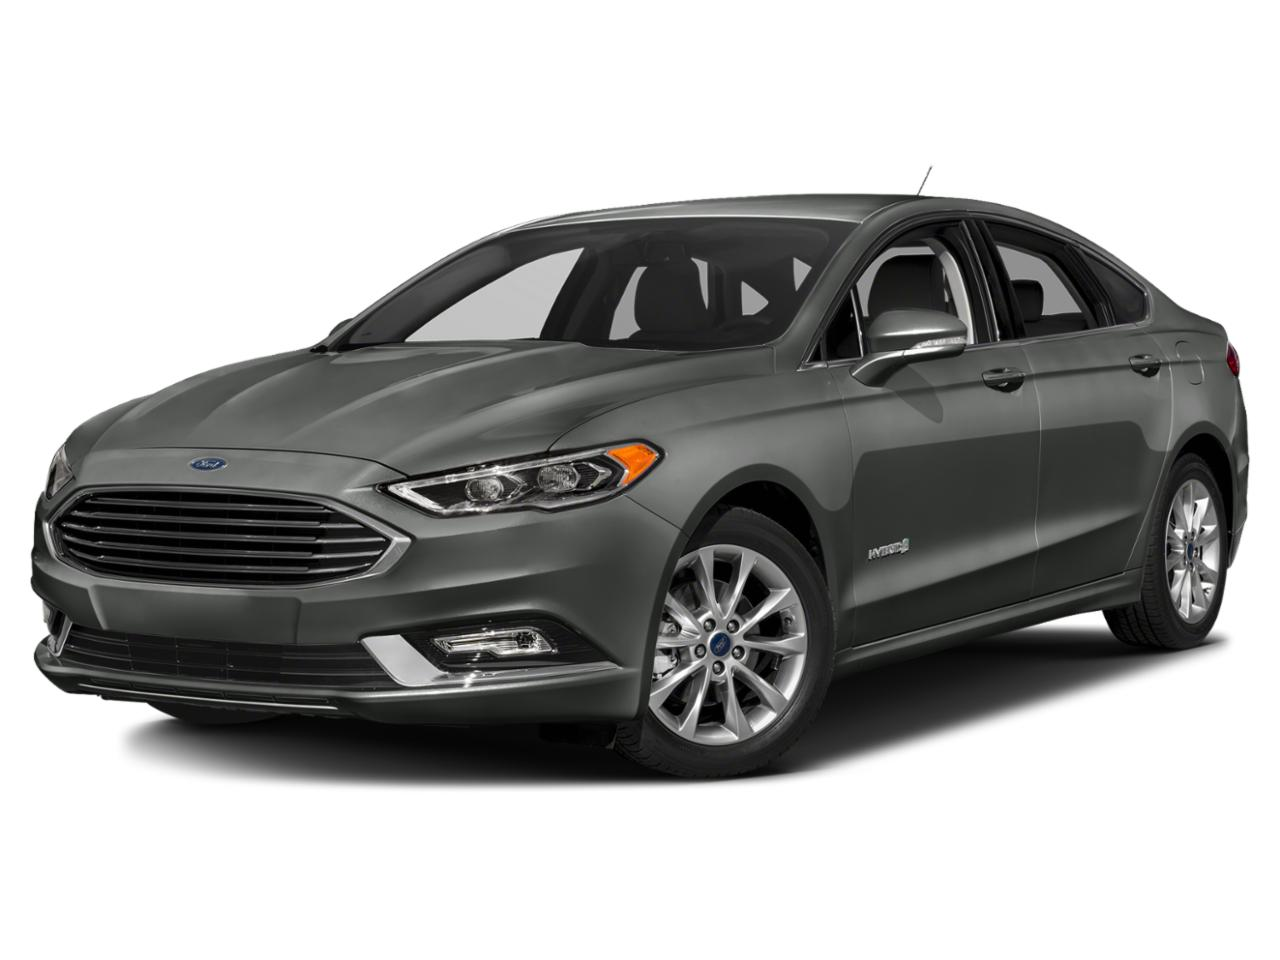 2018 Ford Fusion Hybrid Vehicle Photo in Rockville, MD 20852